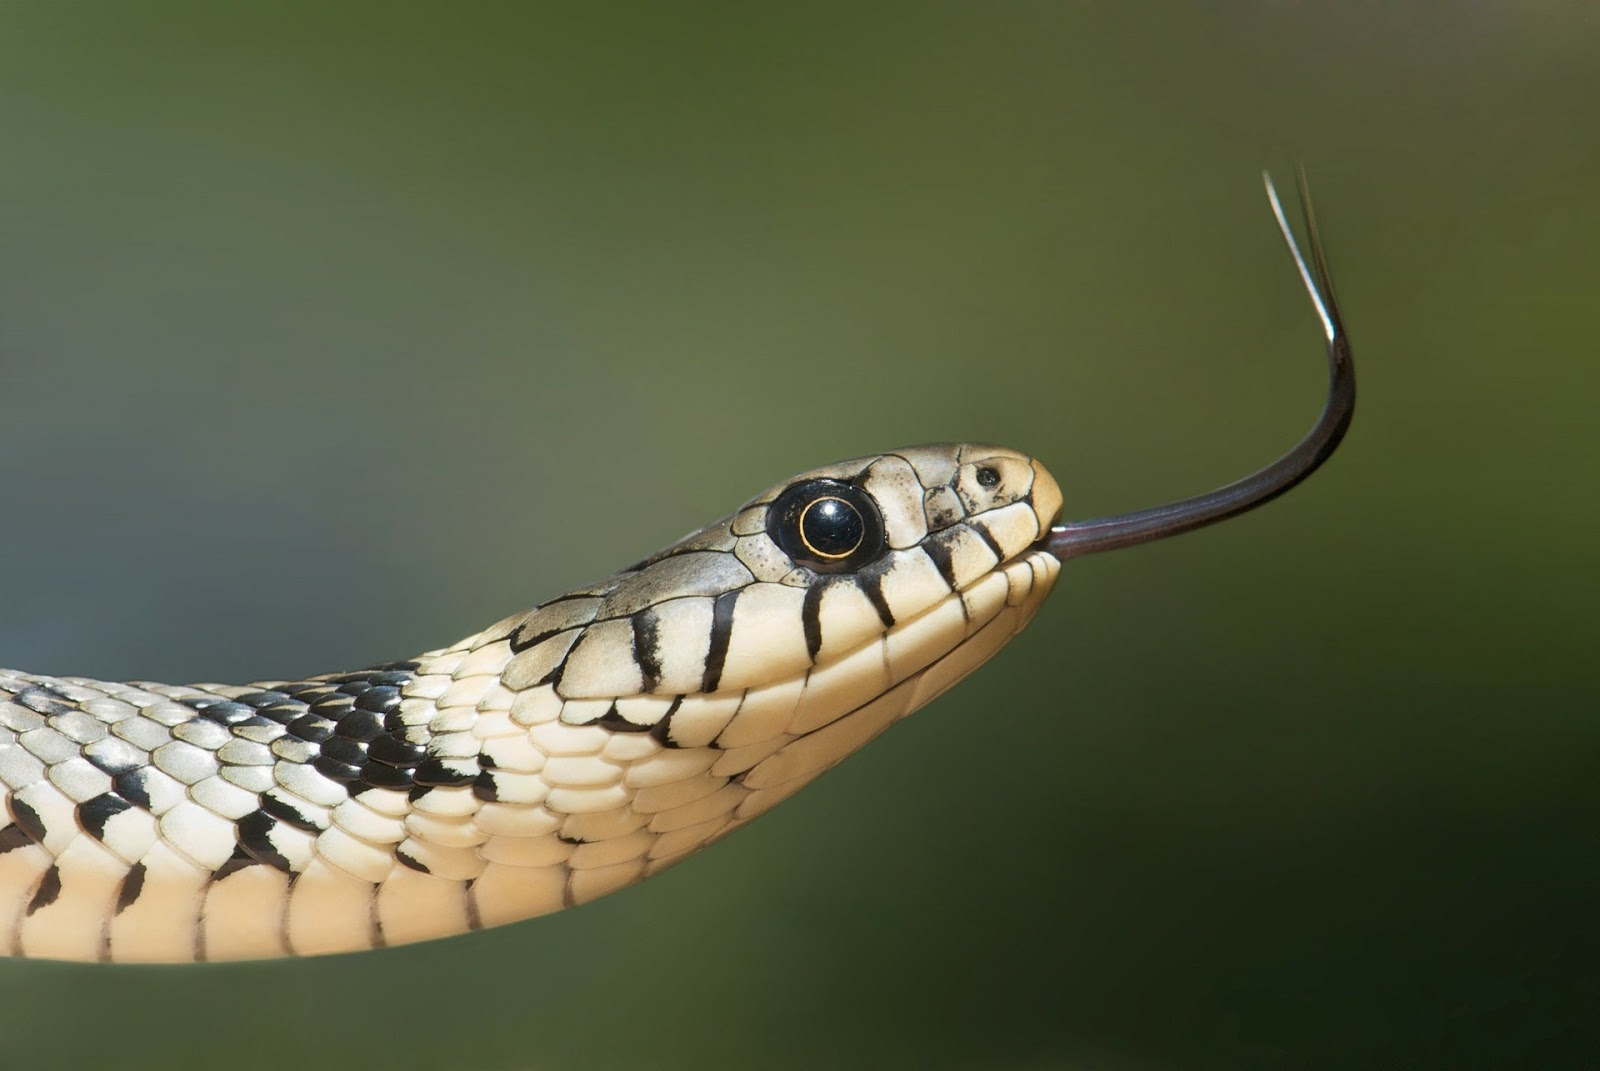 Upclose snake eye with tongue out